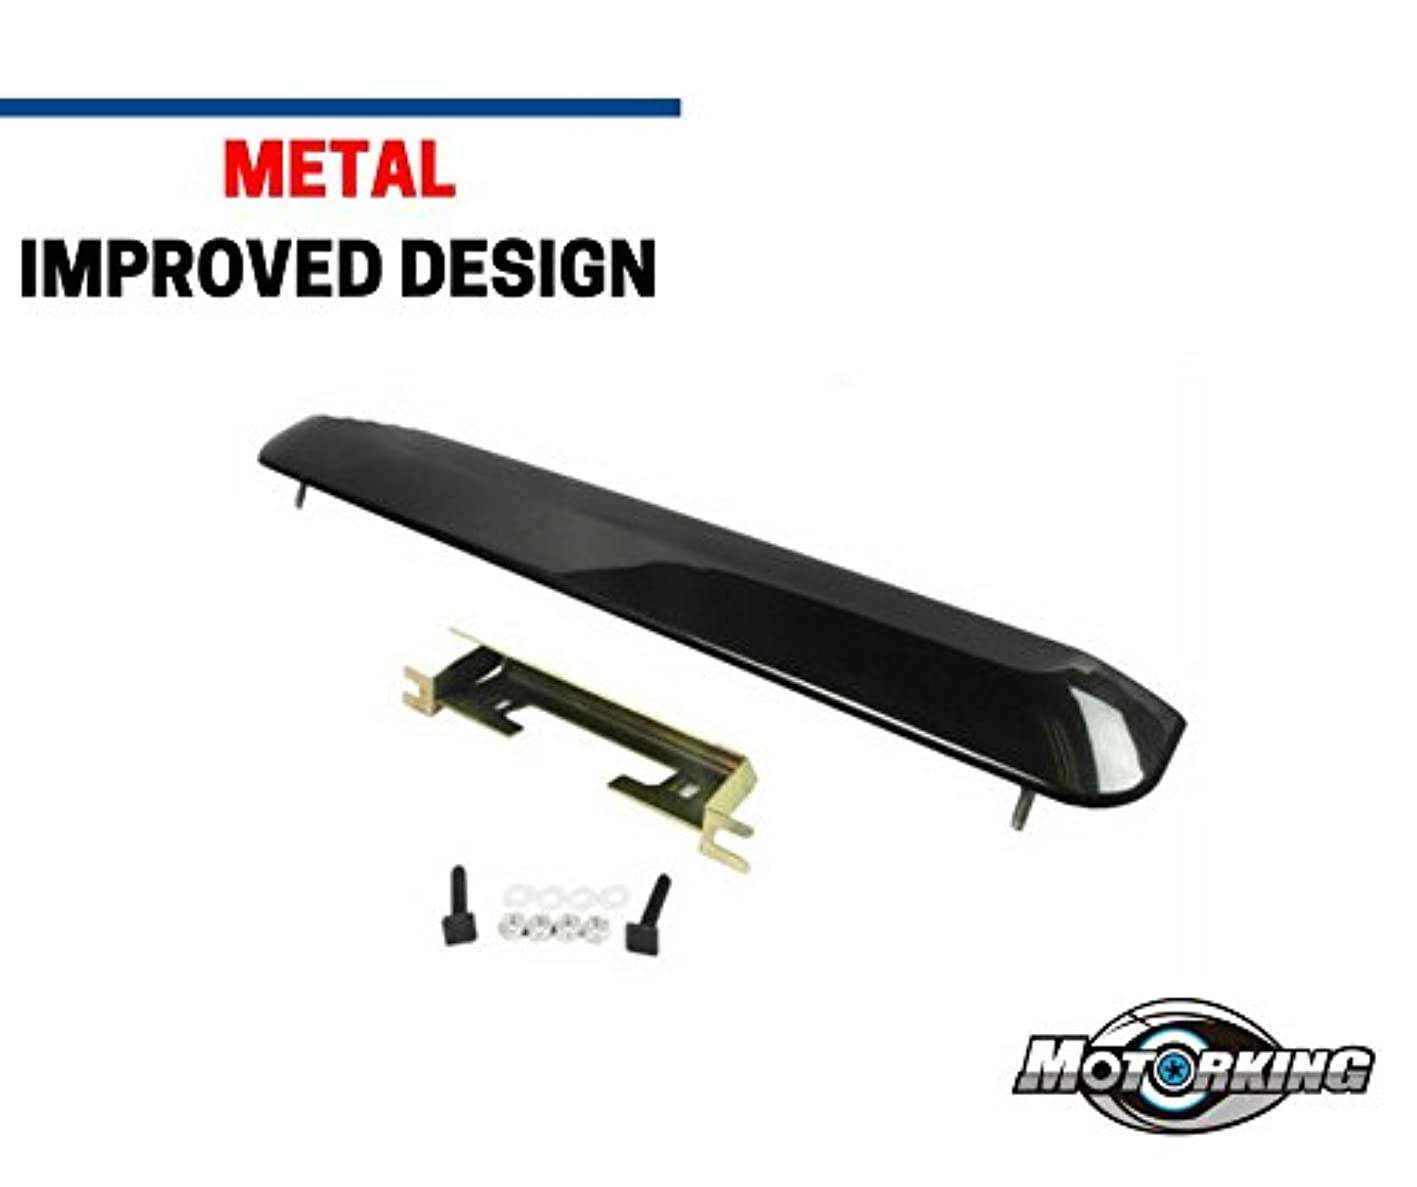 MotorKing UF1017-TG-1F4 Liftgate Tailgate Handle (Garnish Hatch For Scion xB 1.5L L4 Shadow Mica 1F4 2004-2006) pmqeudhivbt291